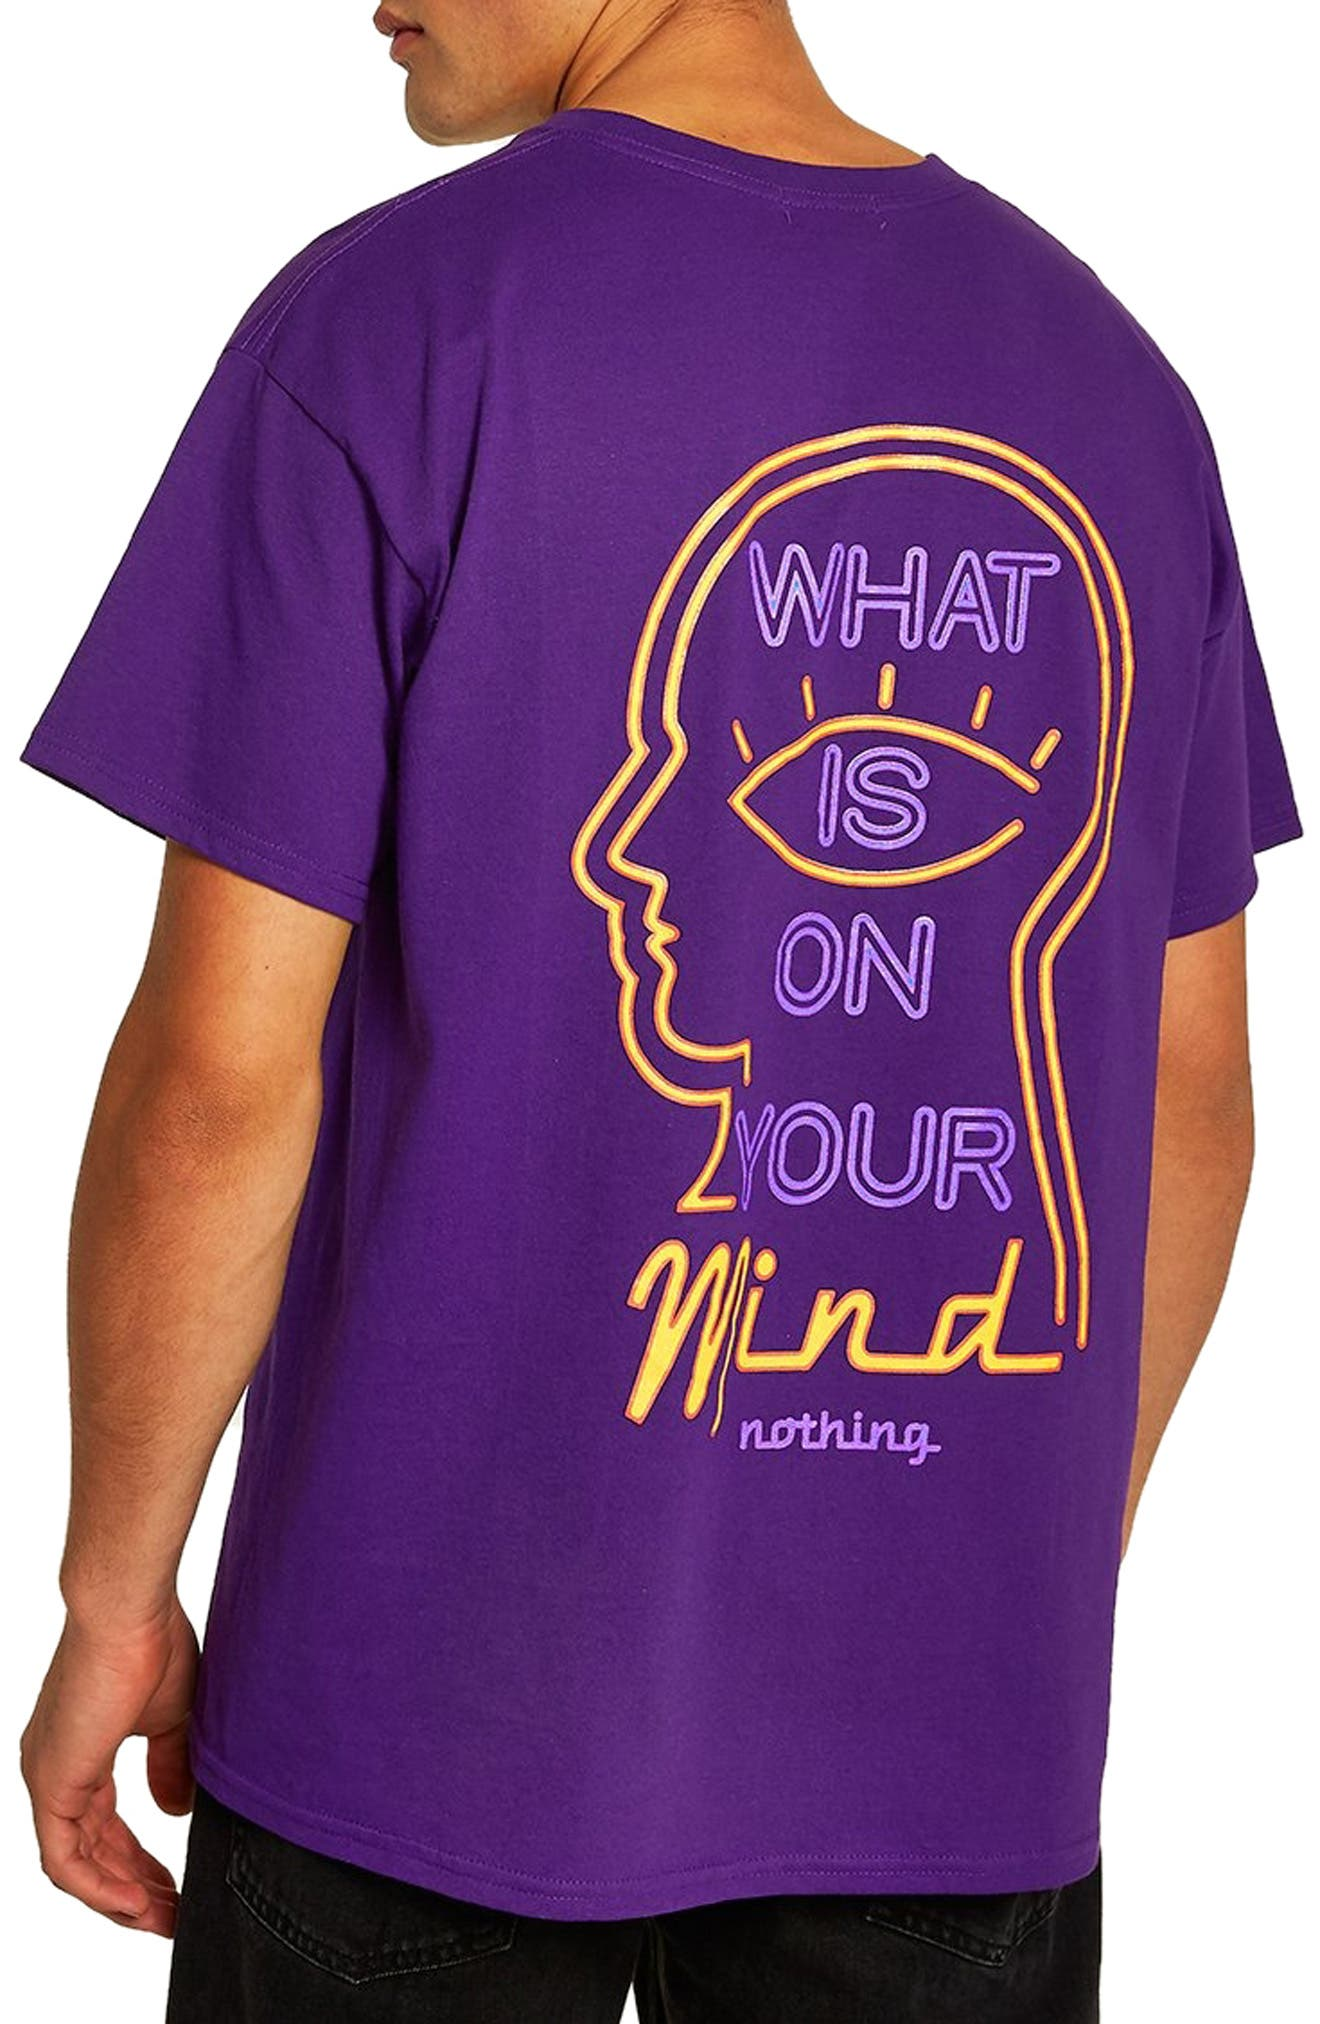 On Your Mind Graphic T-Shirt,                             Alternate thumbnail 2, color,                             500